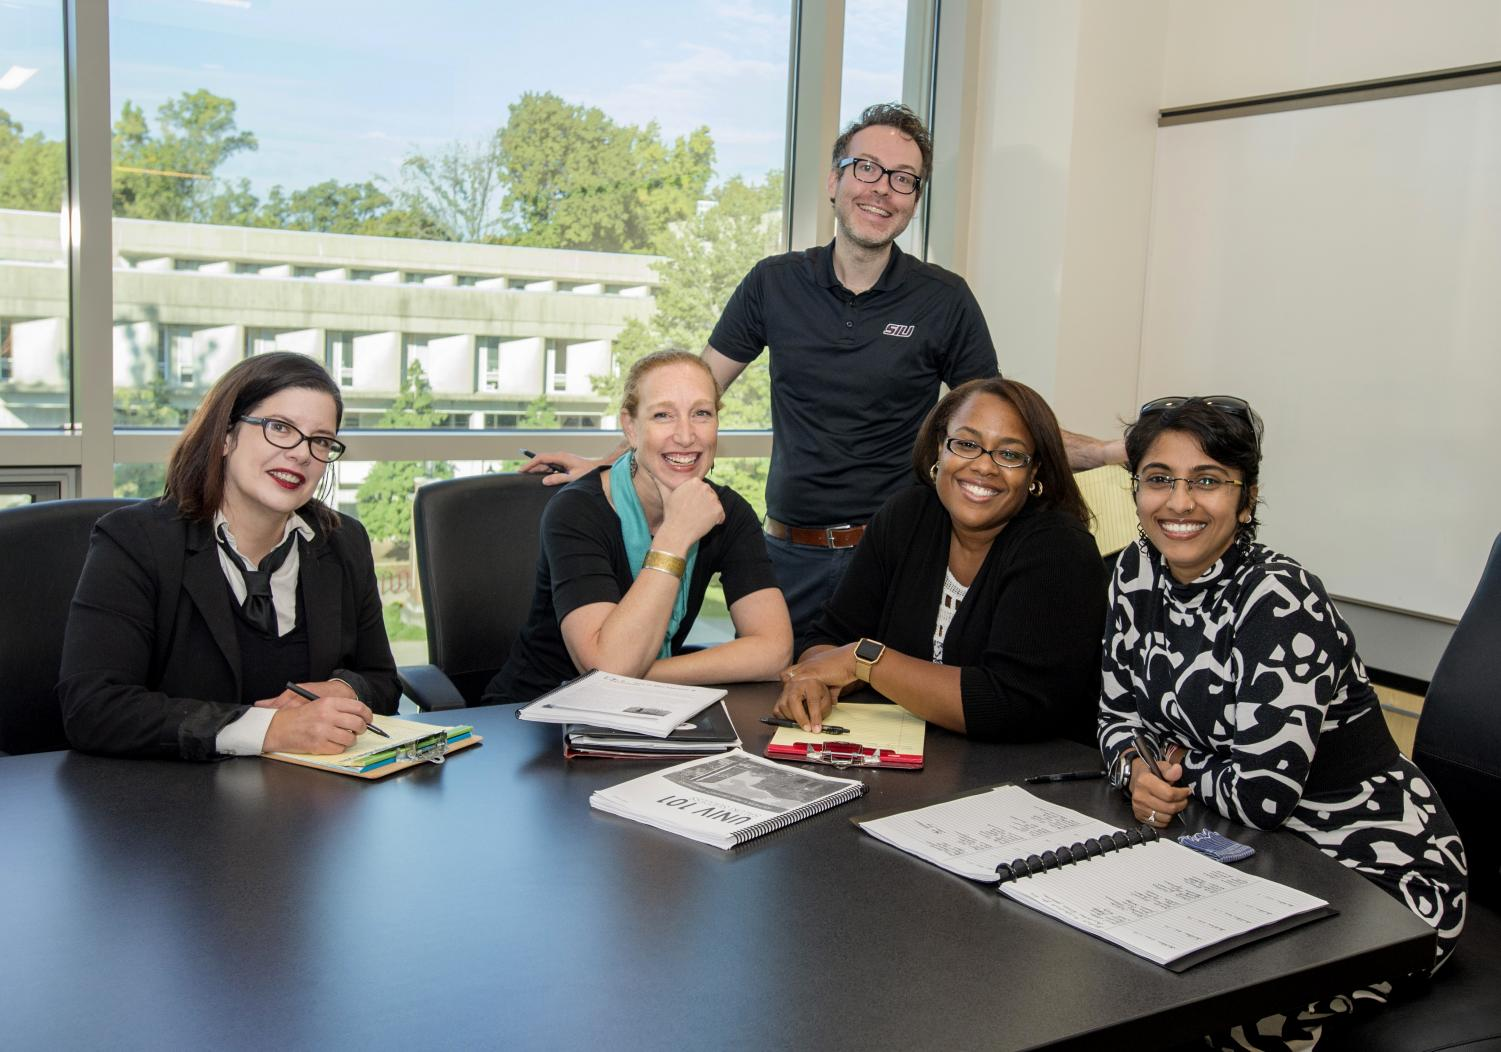 From left: Saluki Success Program staff Abigail Wheetley. Laura Borger, Nick Weschinskey, Casheena Stephens and Gauri Pitale